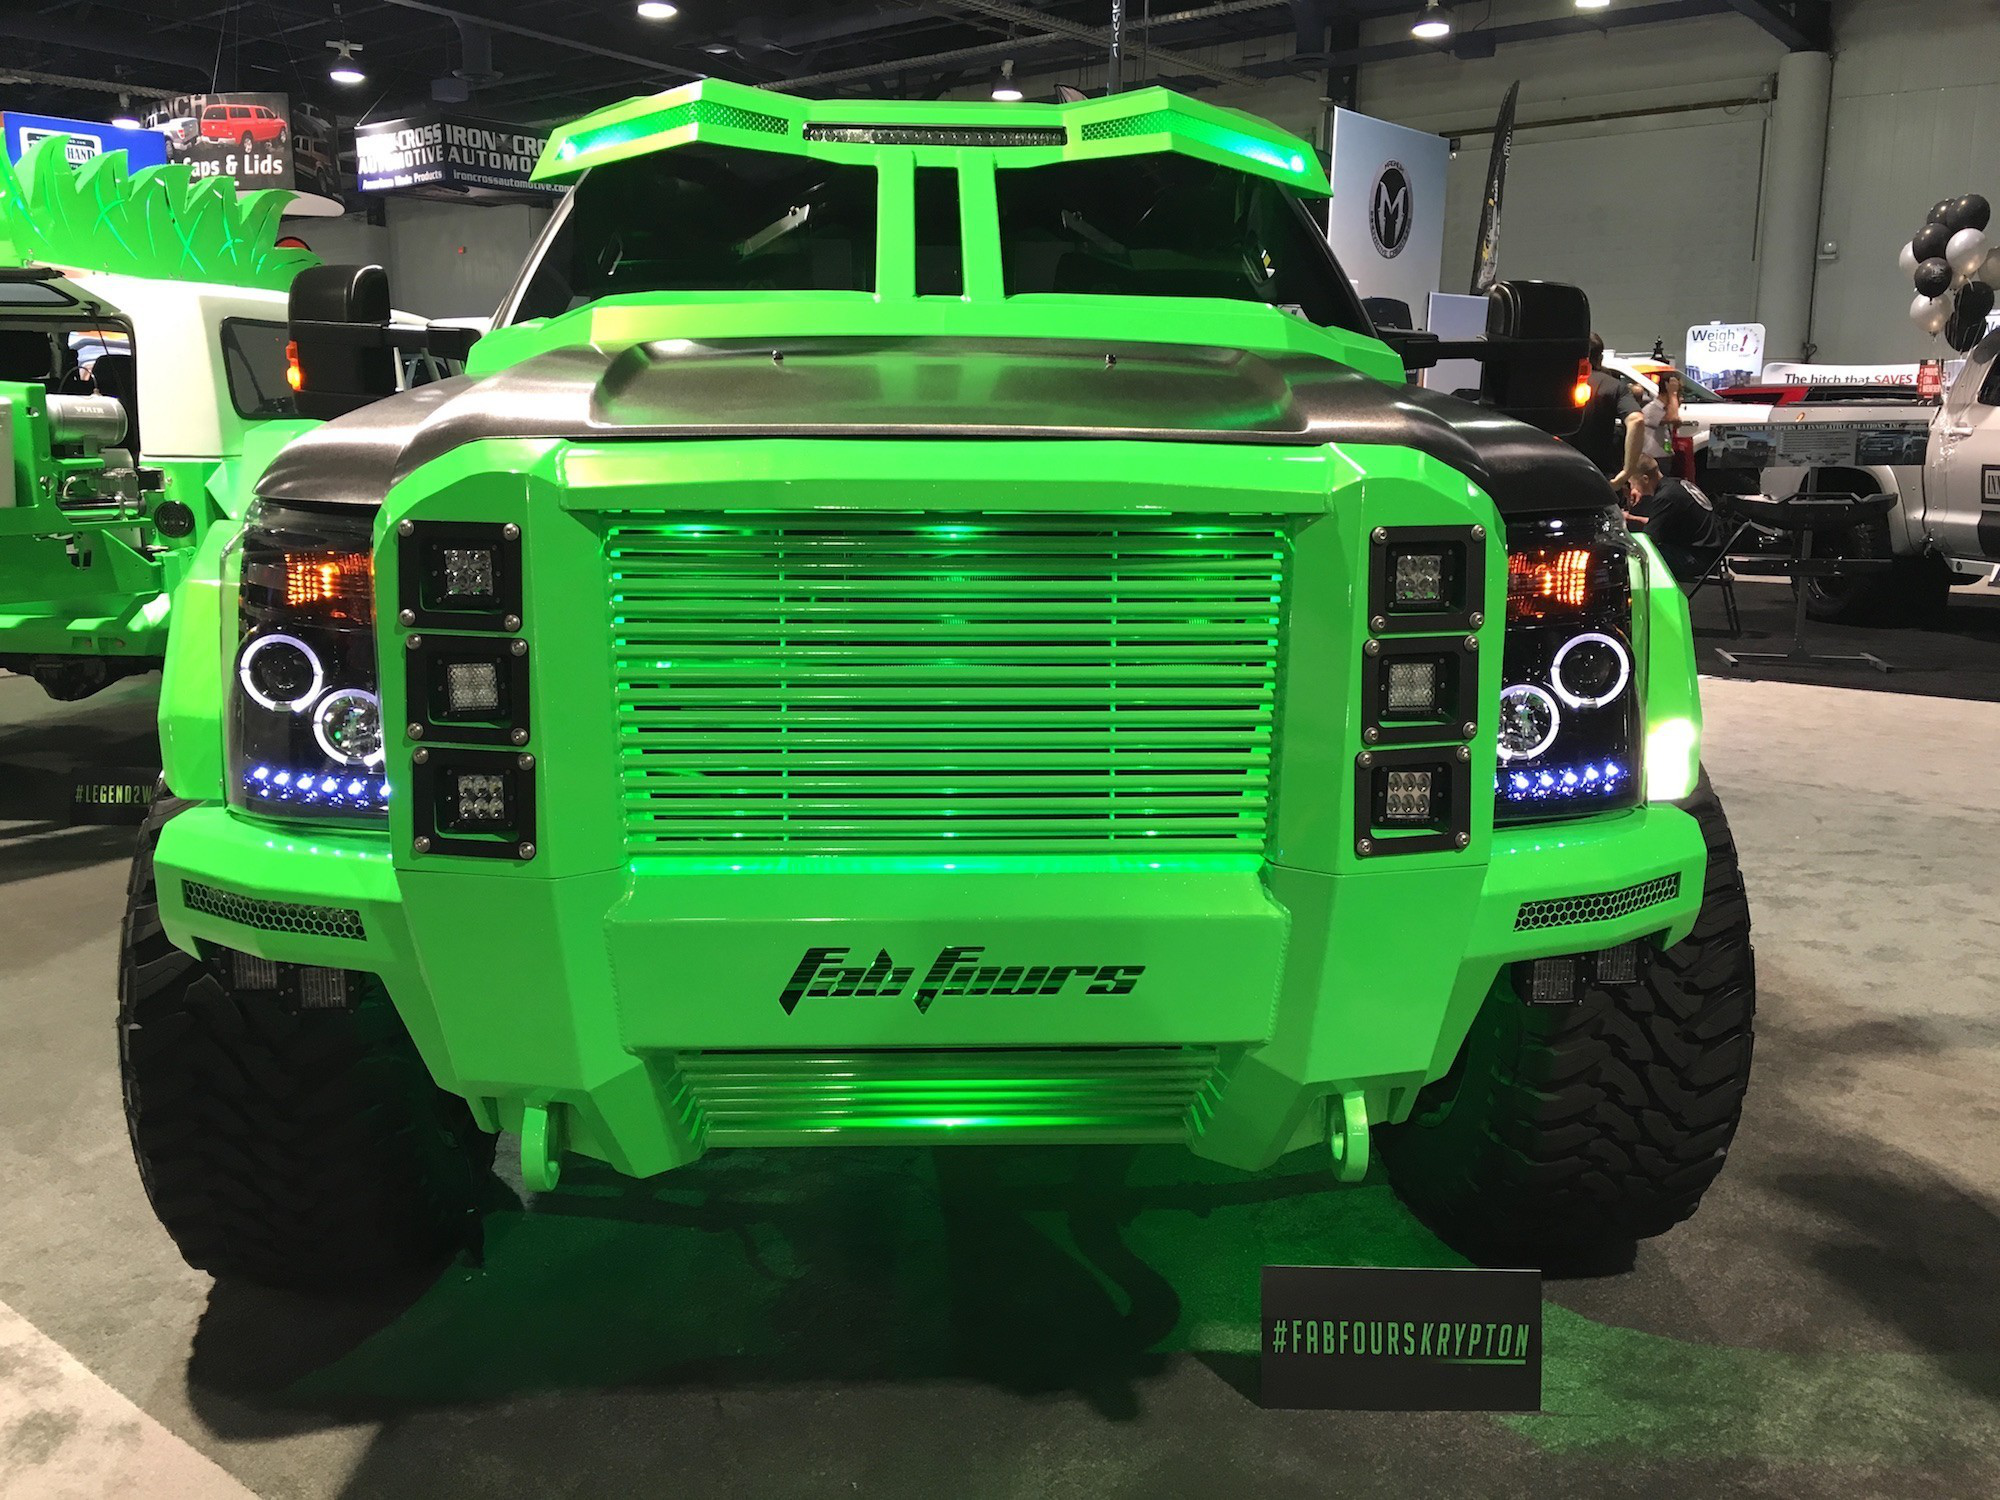 Krypton Ford F 350 With Sinister Visor 40 Inch Tires Is